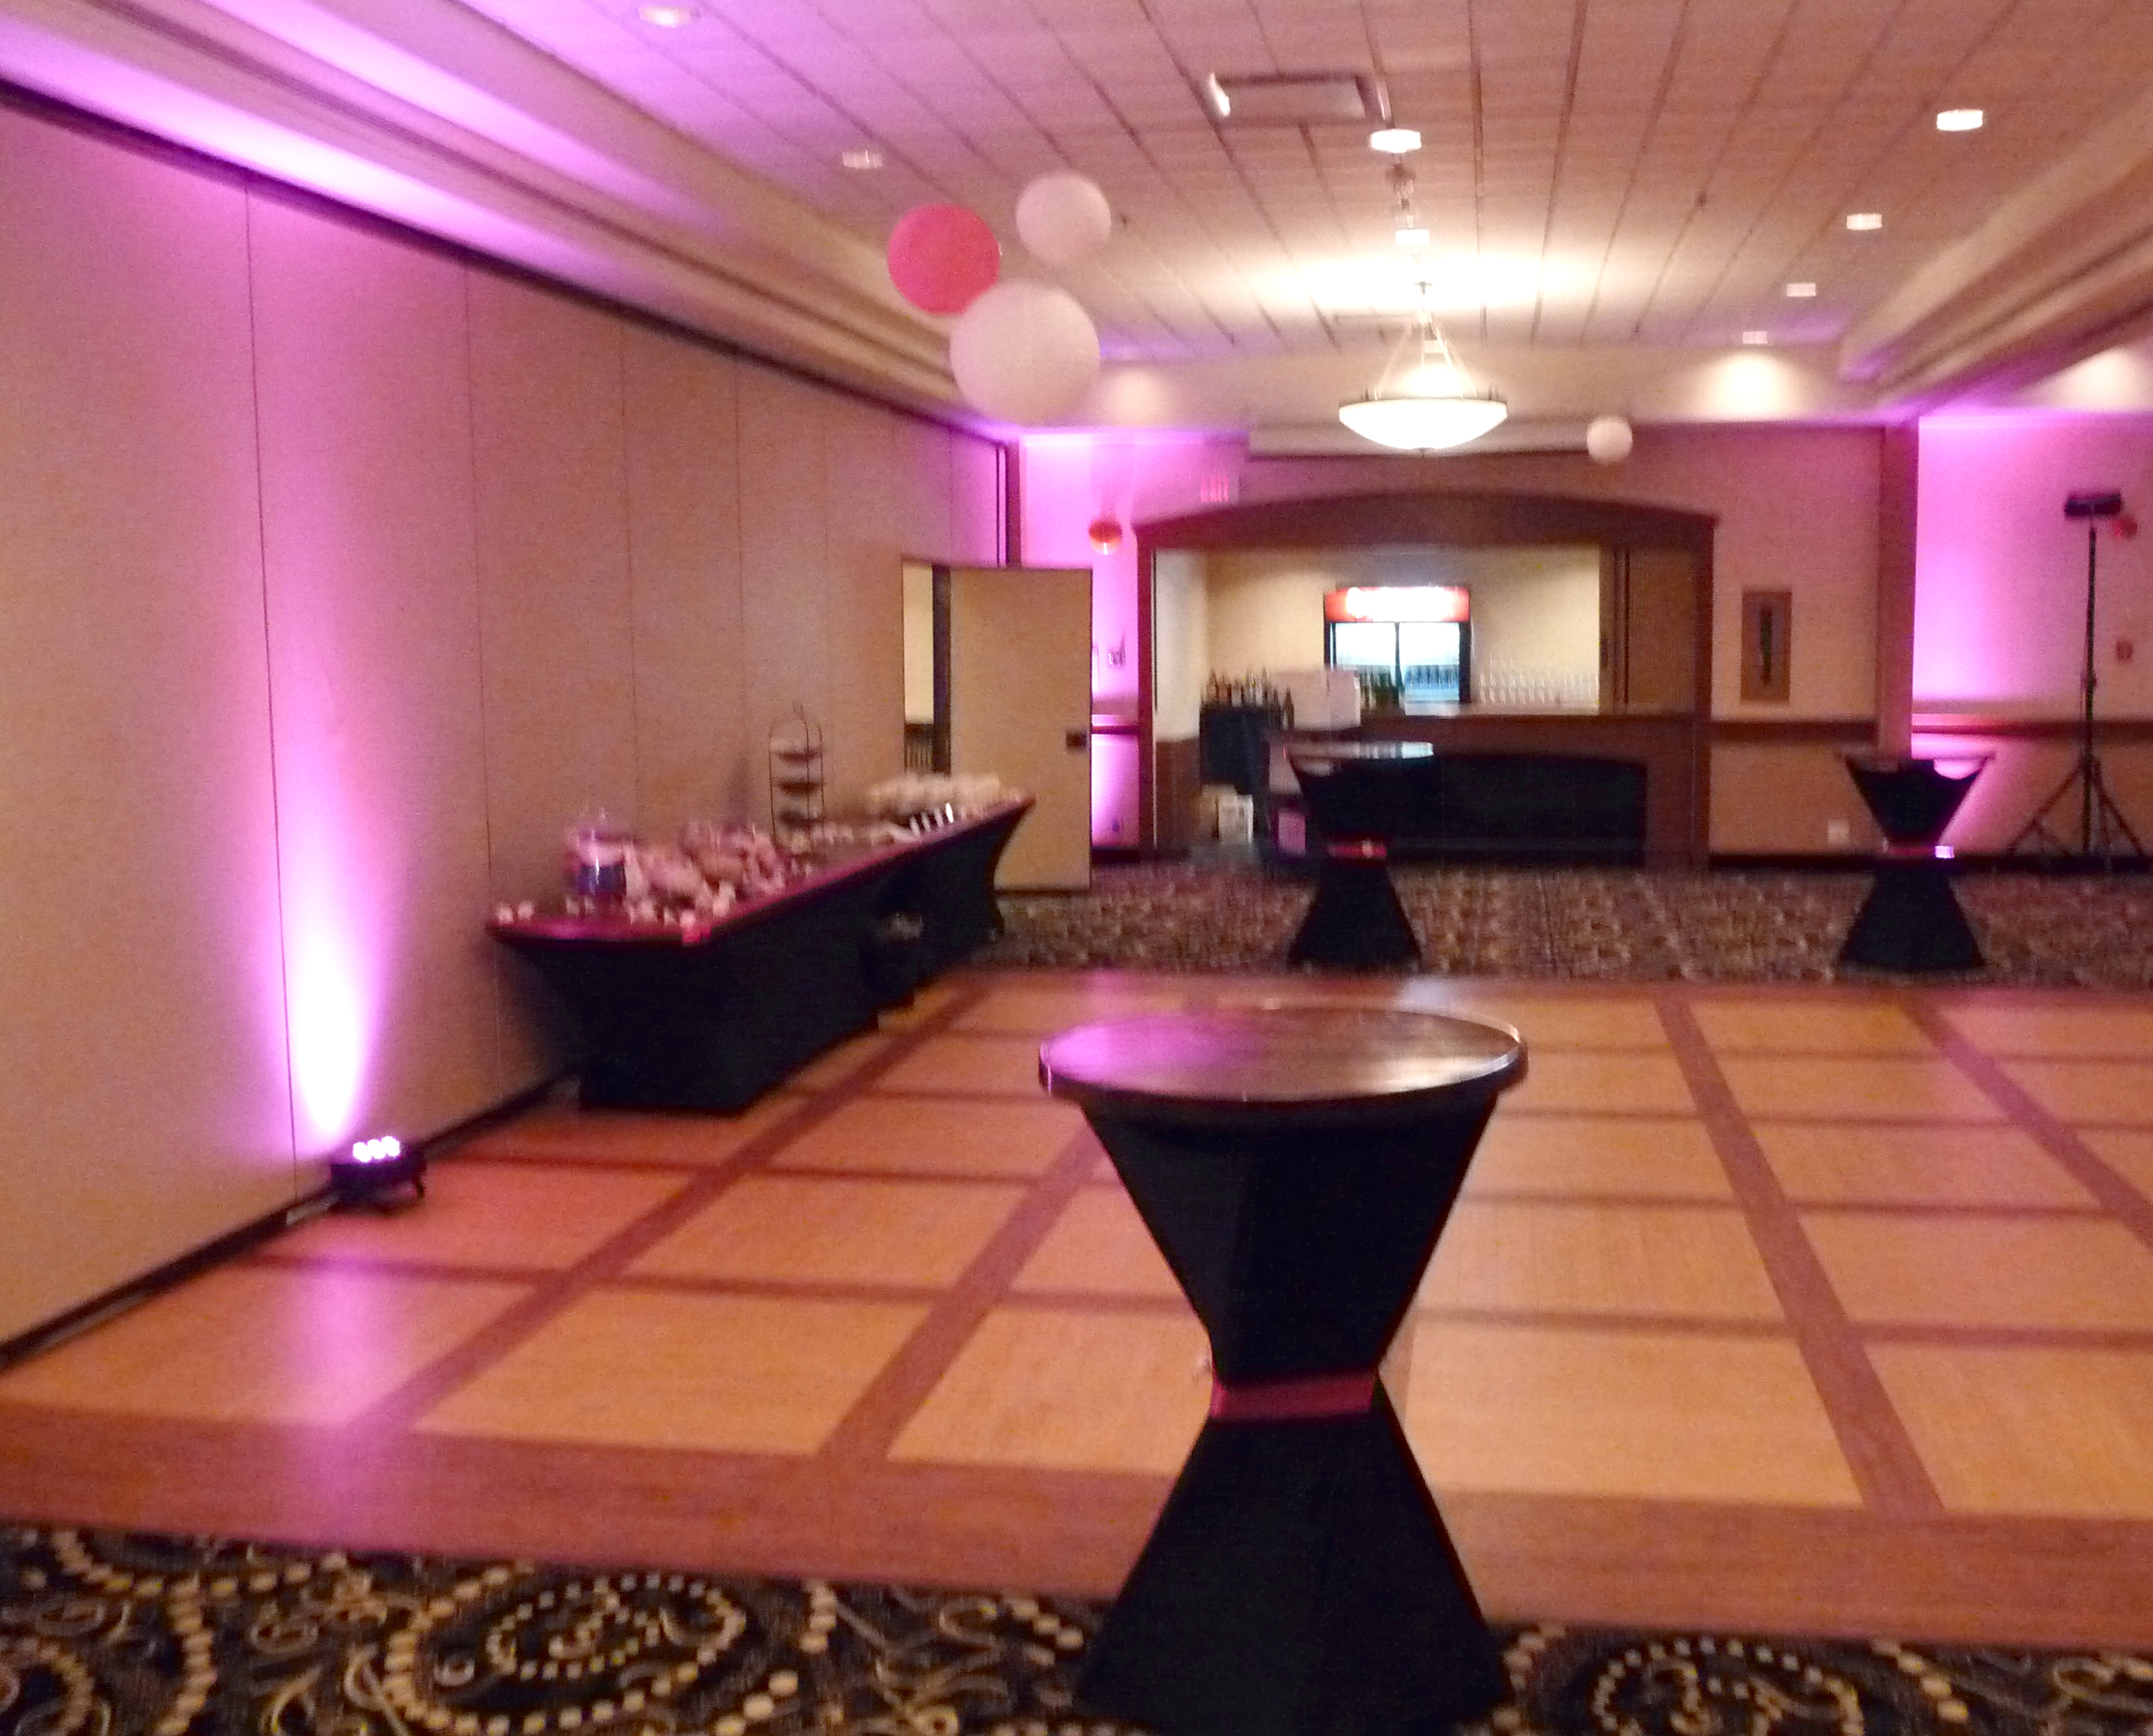 Uplights, lounge and candy areas